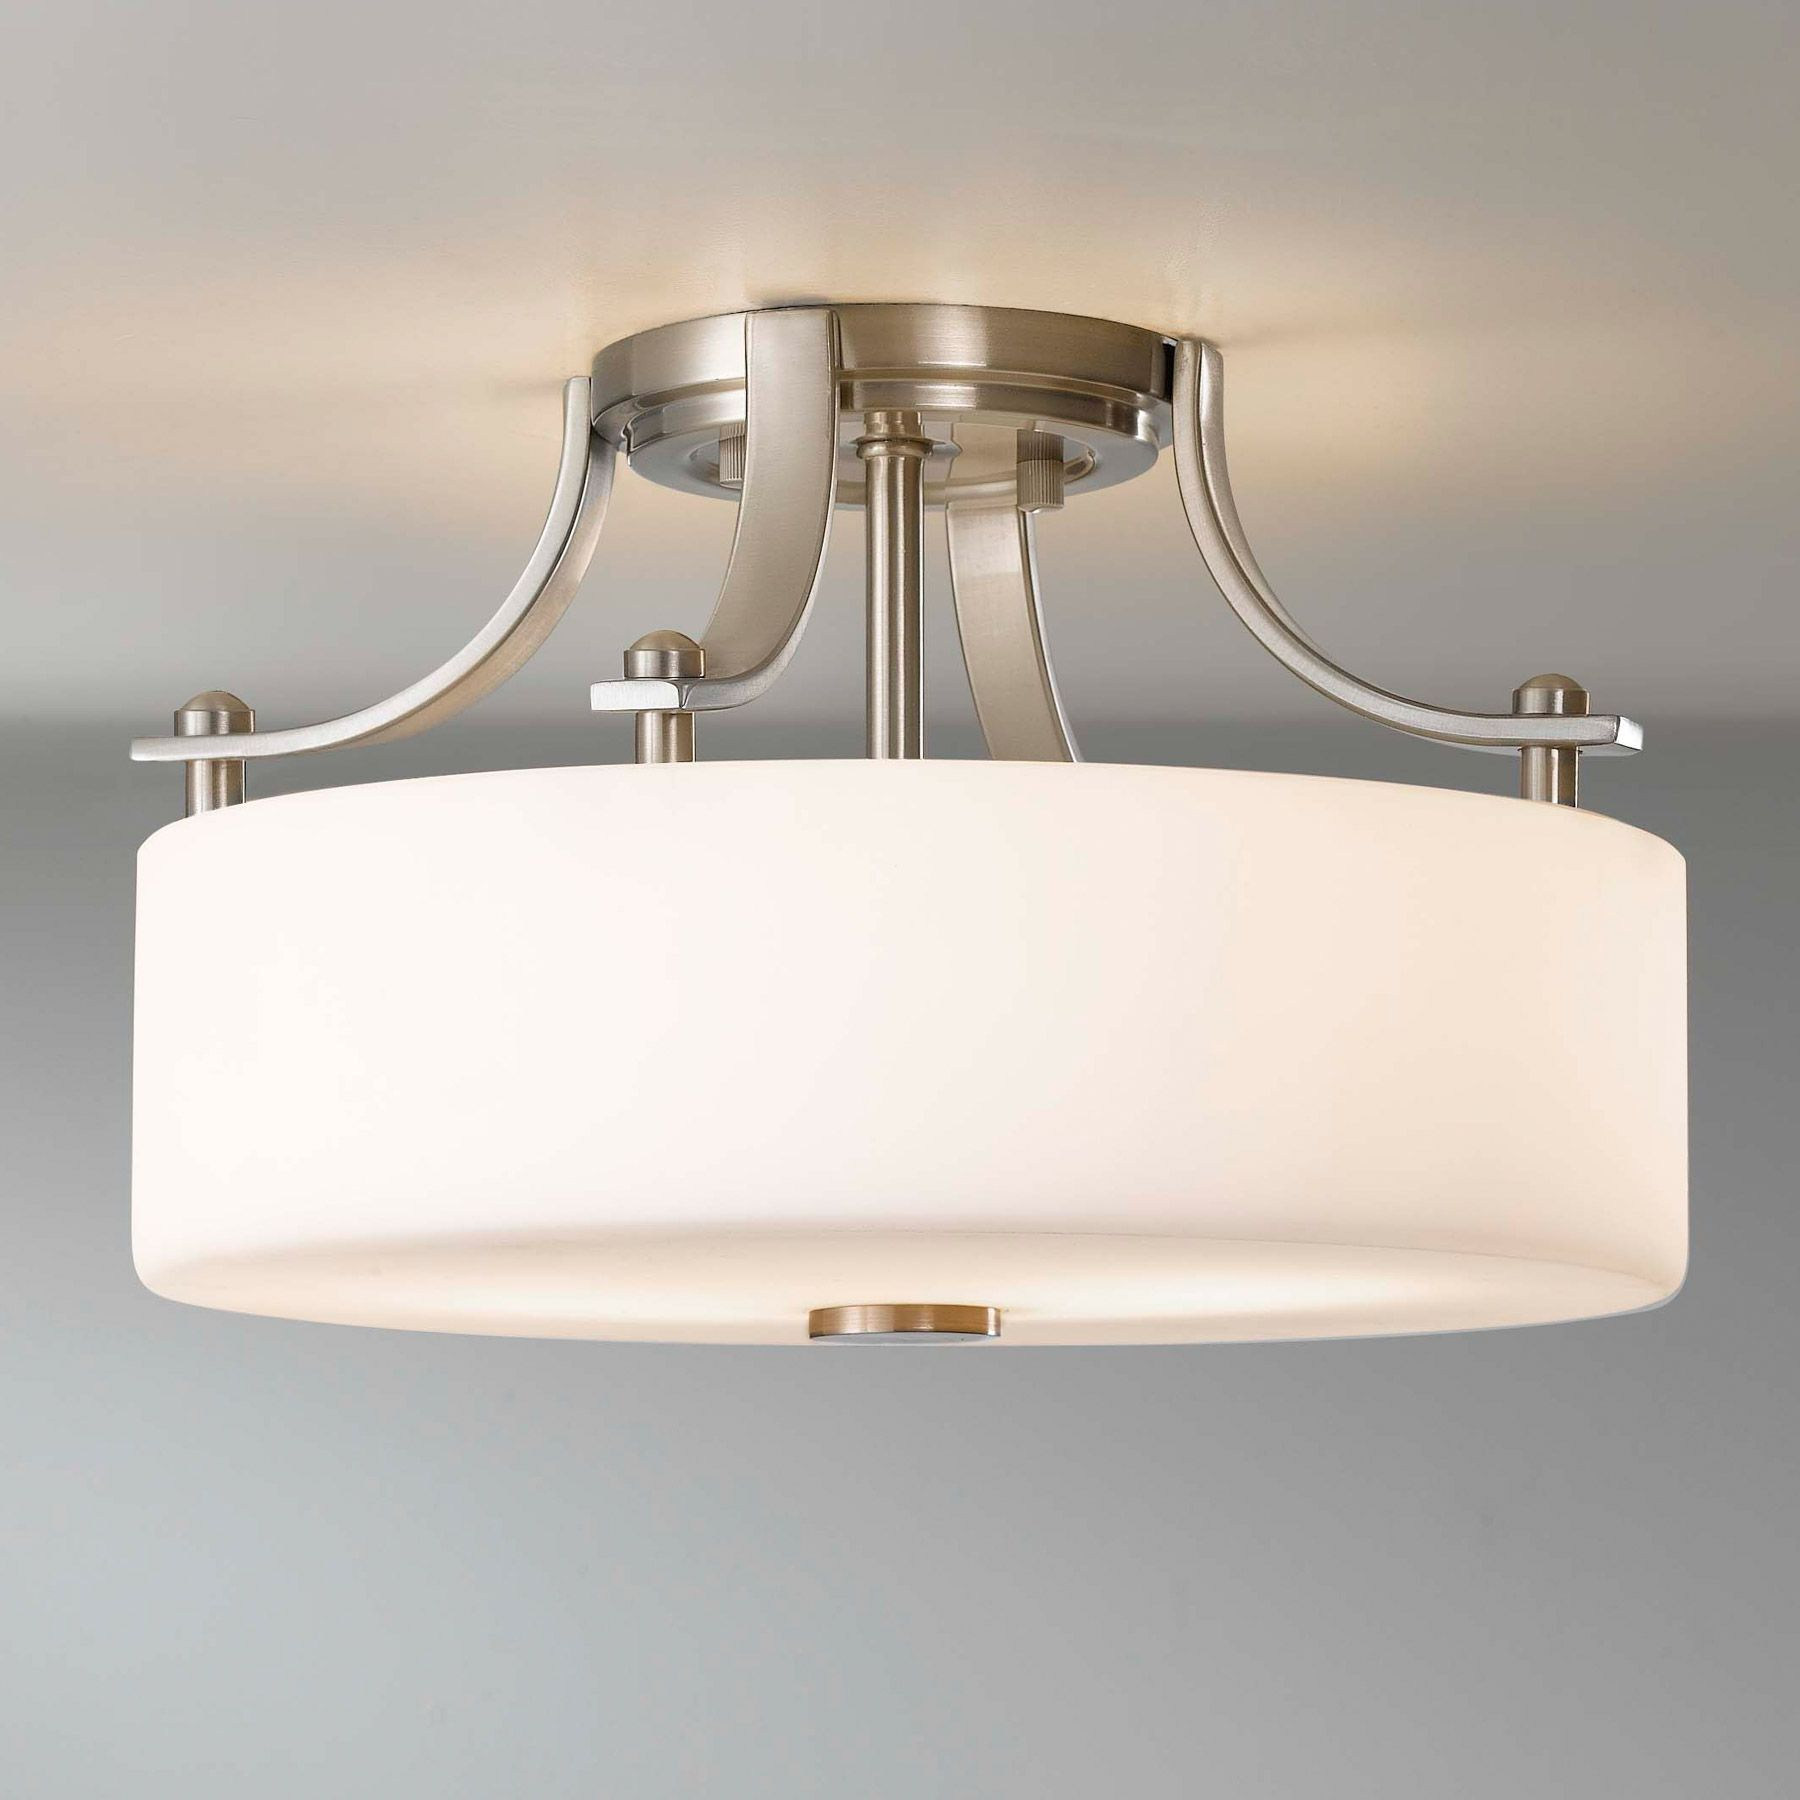 kitchen lighting flush mount White FlushMount Light Fixture